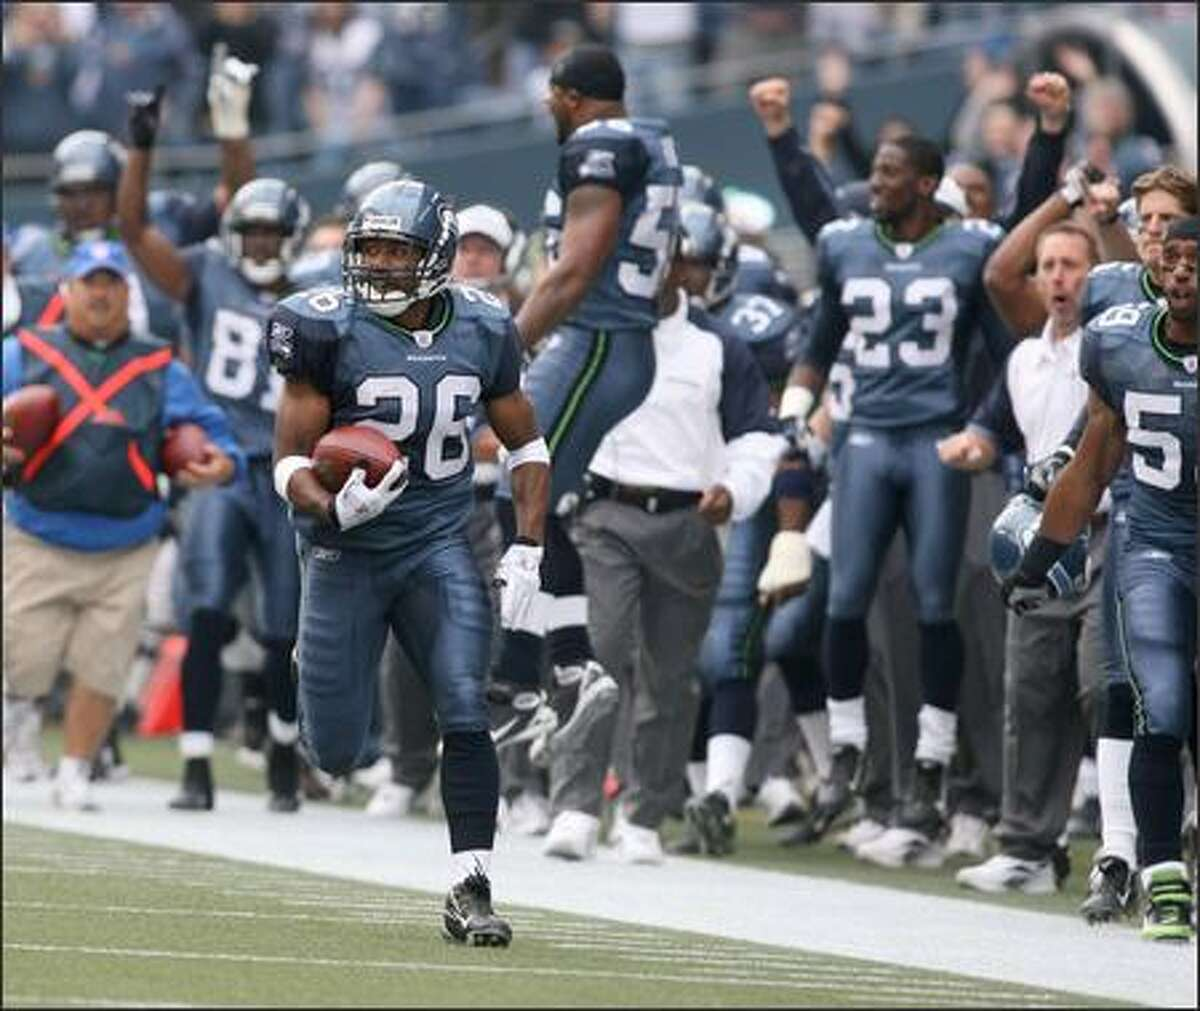 As his Seahawks teammates on the sideline become happy spectators, Josh Wilson returns the opening kickoff 72 yards.